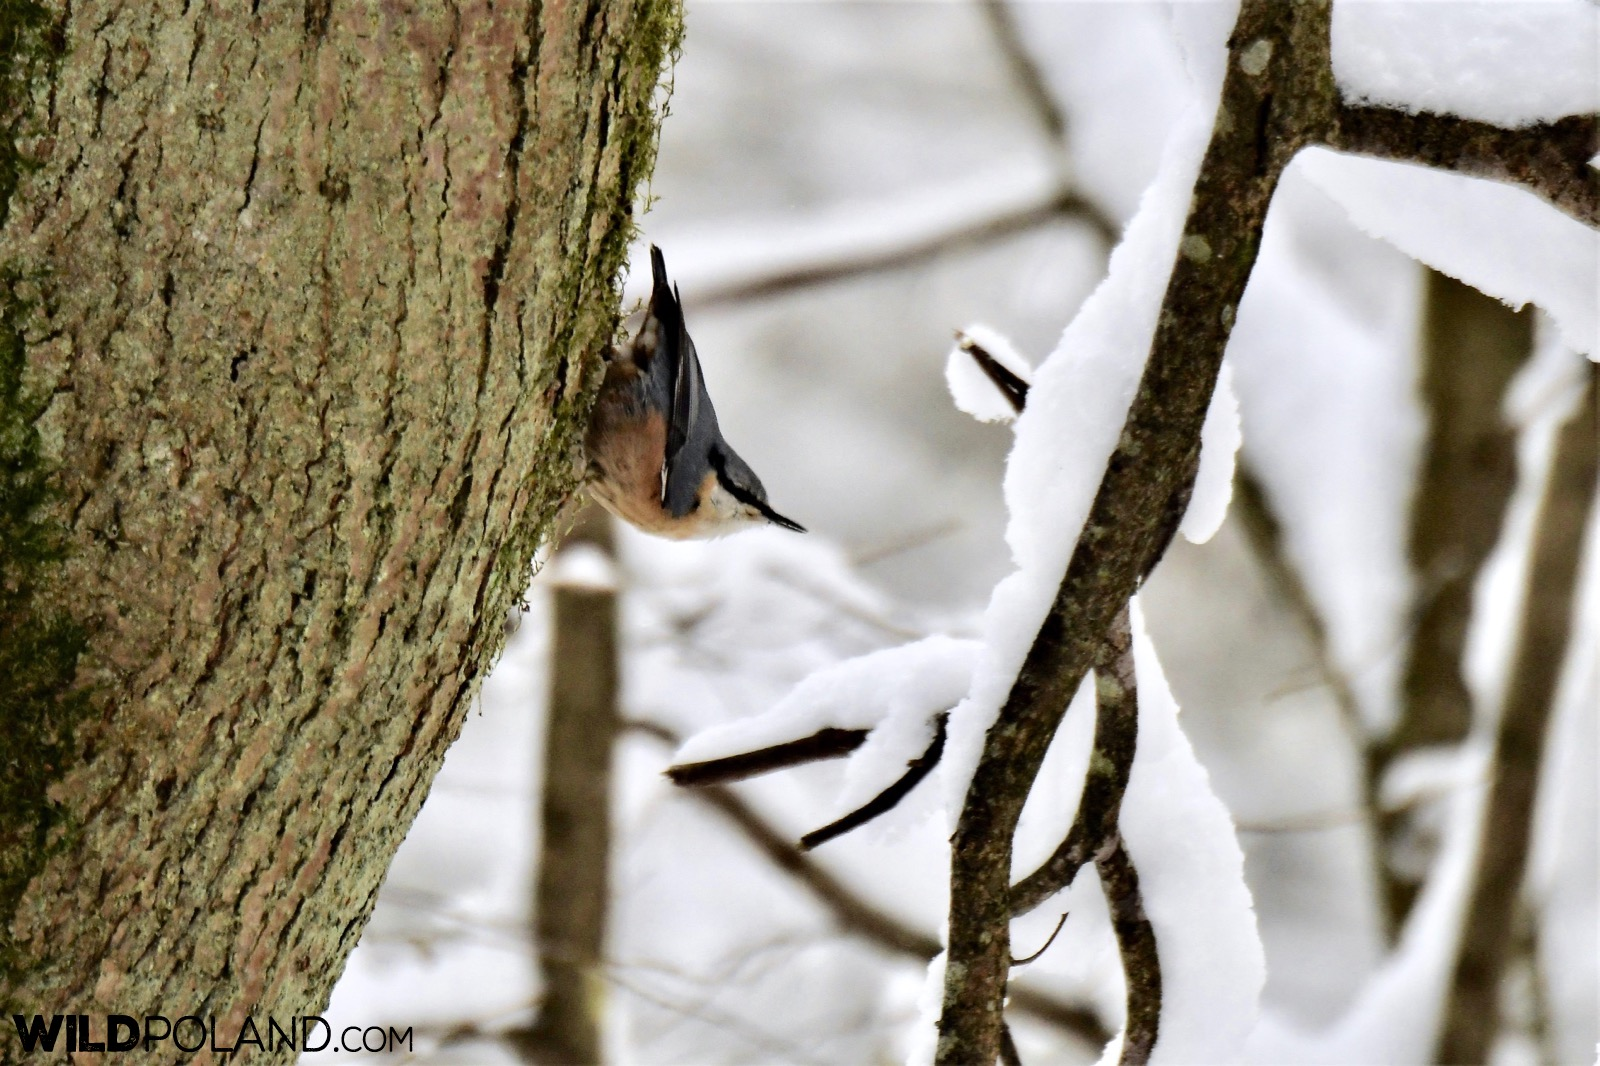 Nuthatch in the Białowieża Forest, photo by our local NP guide Joanna Smerczyńska